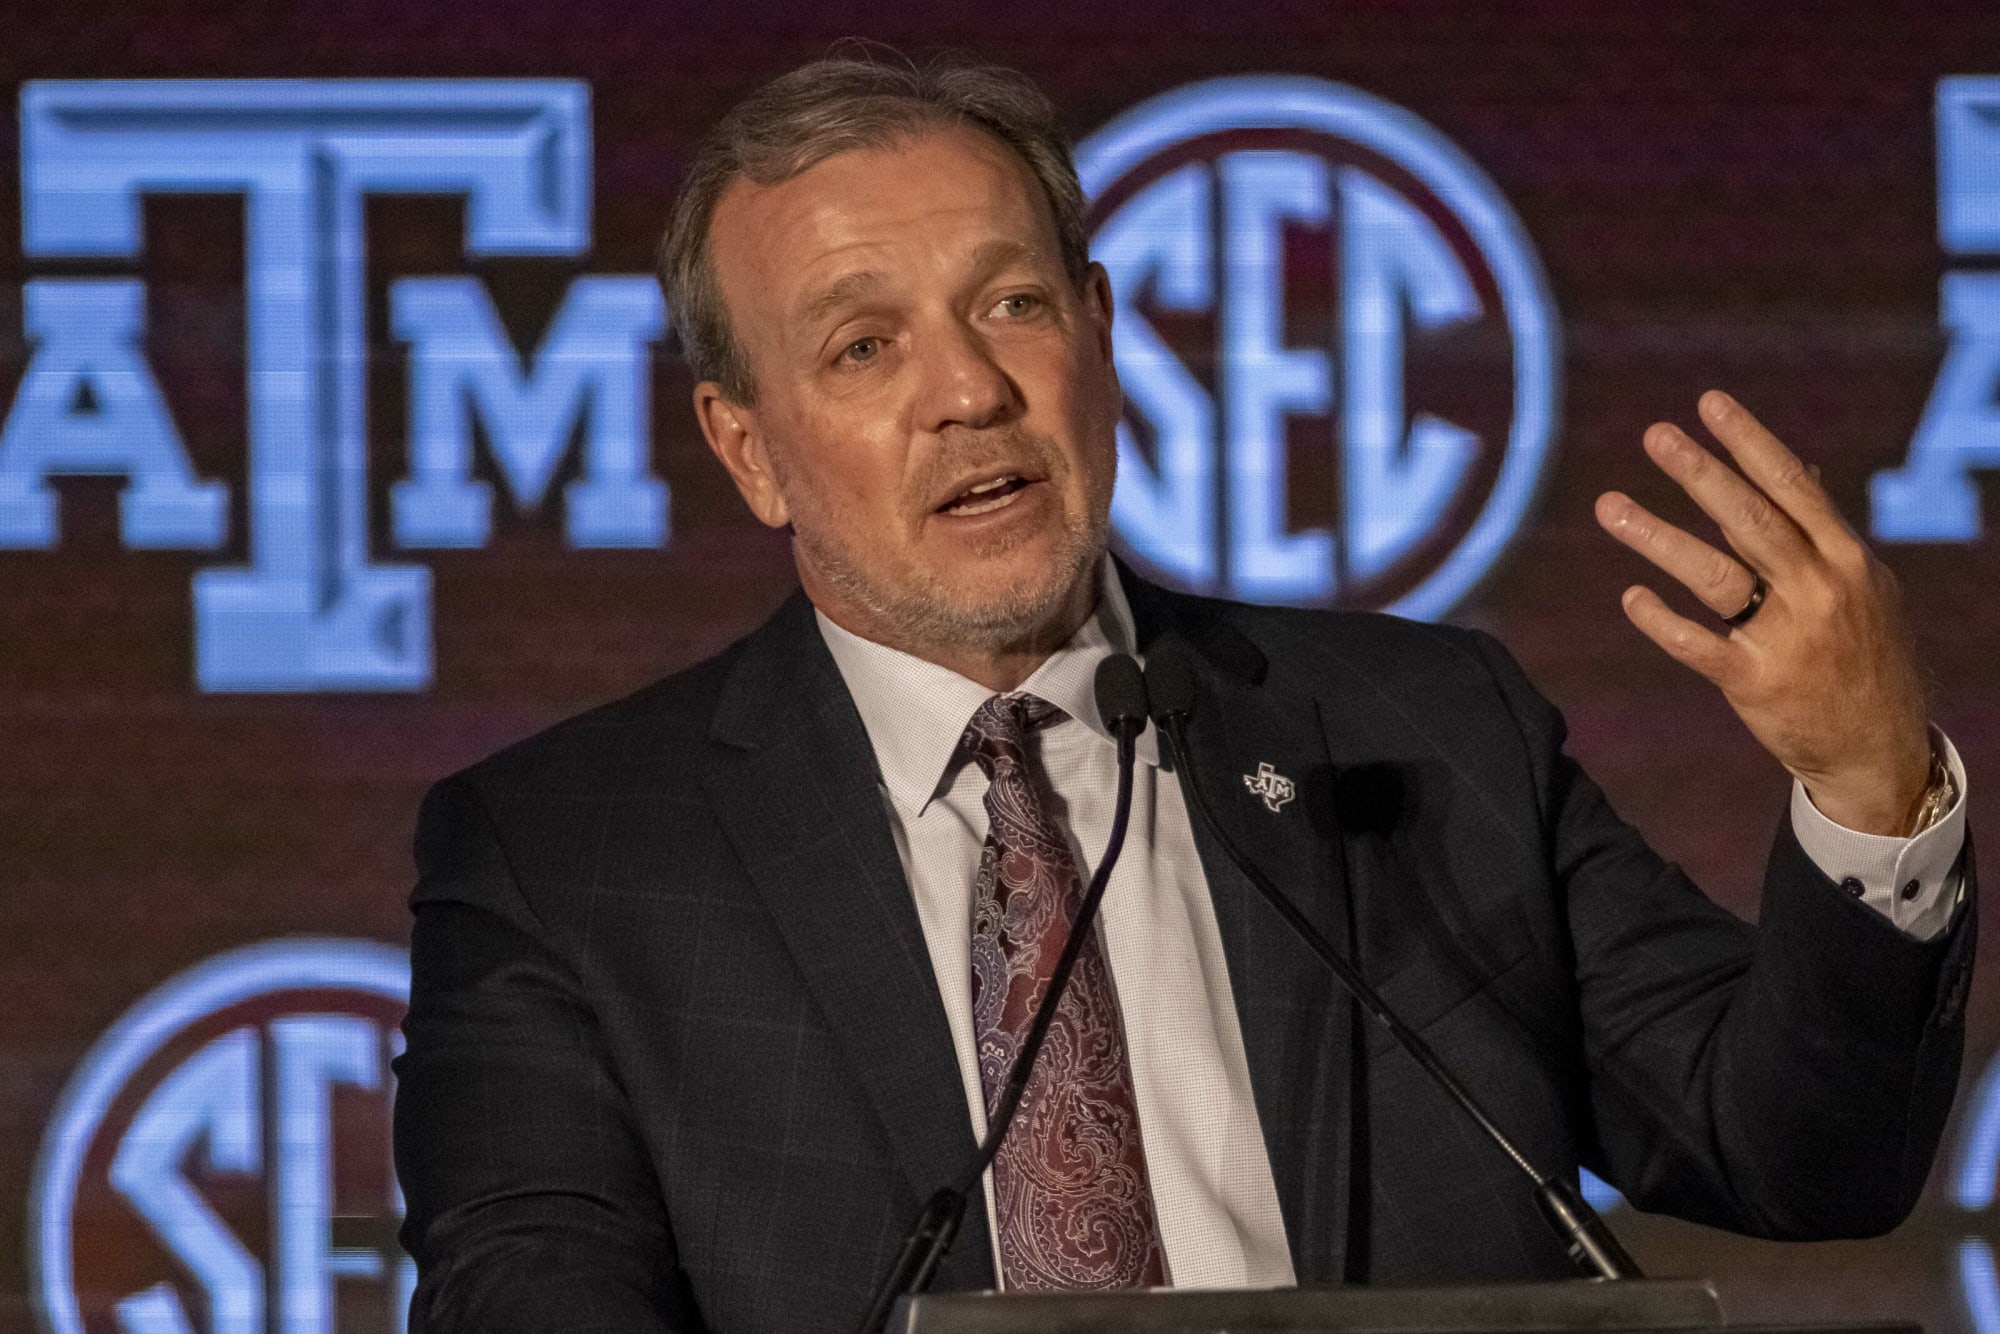 Texas A&M Football: Is there any chance of Aggies leaving the SEC?